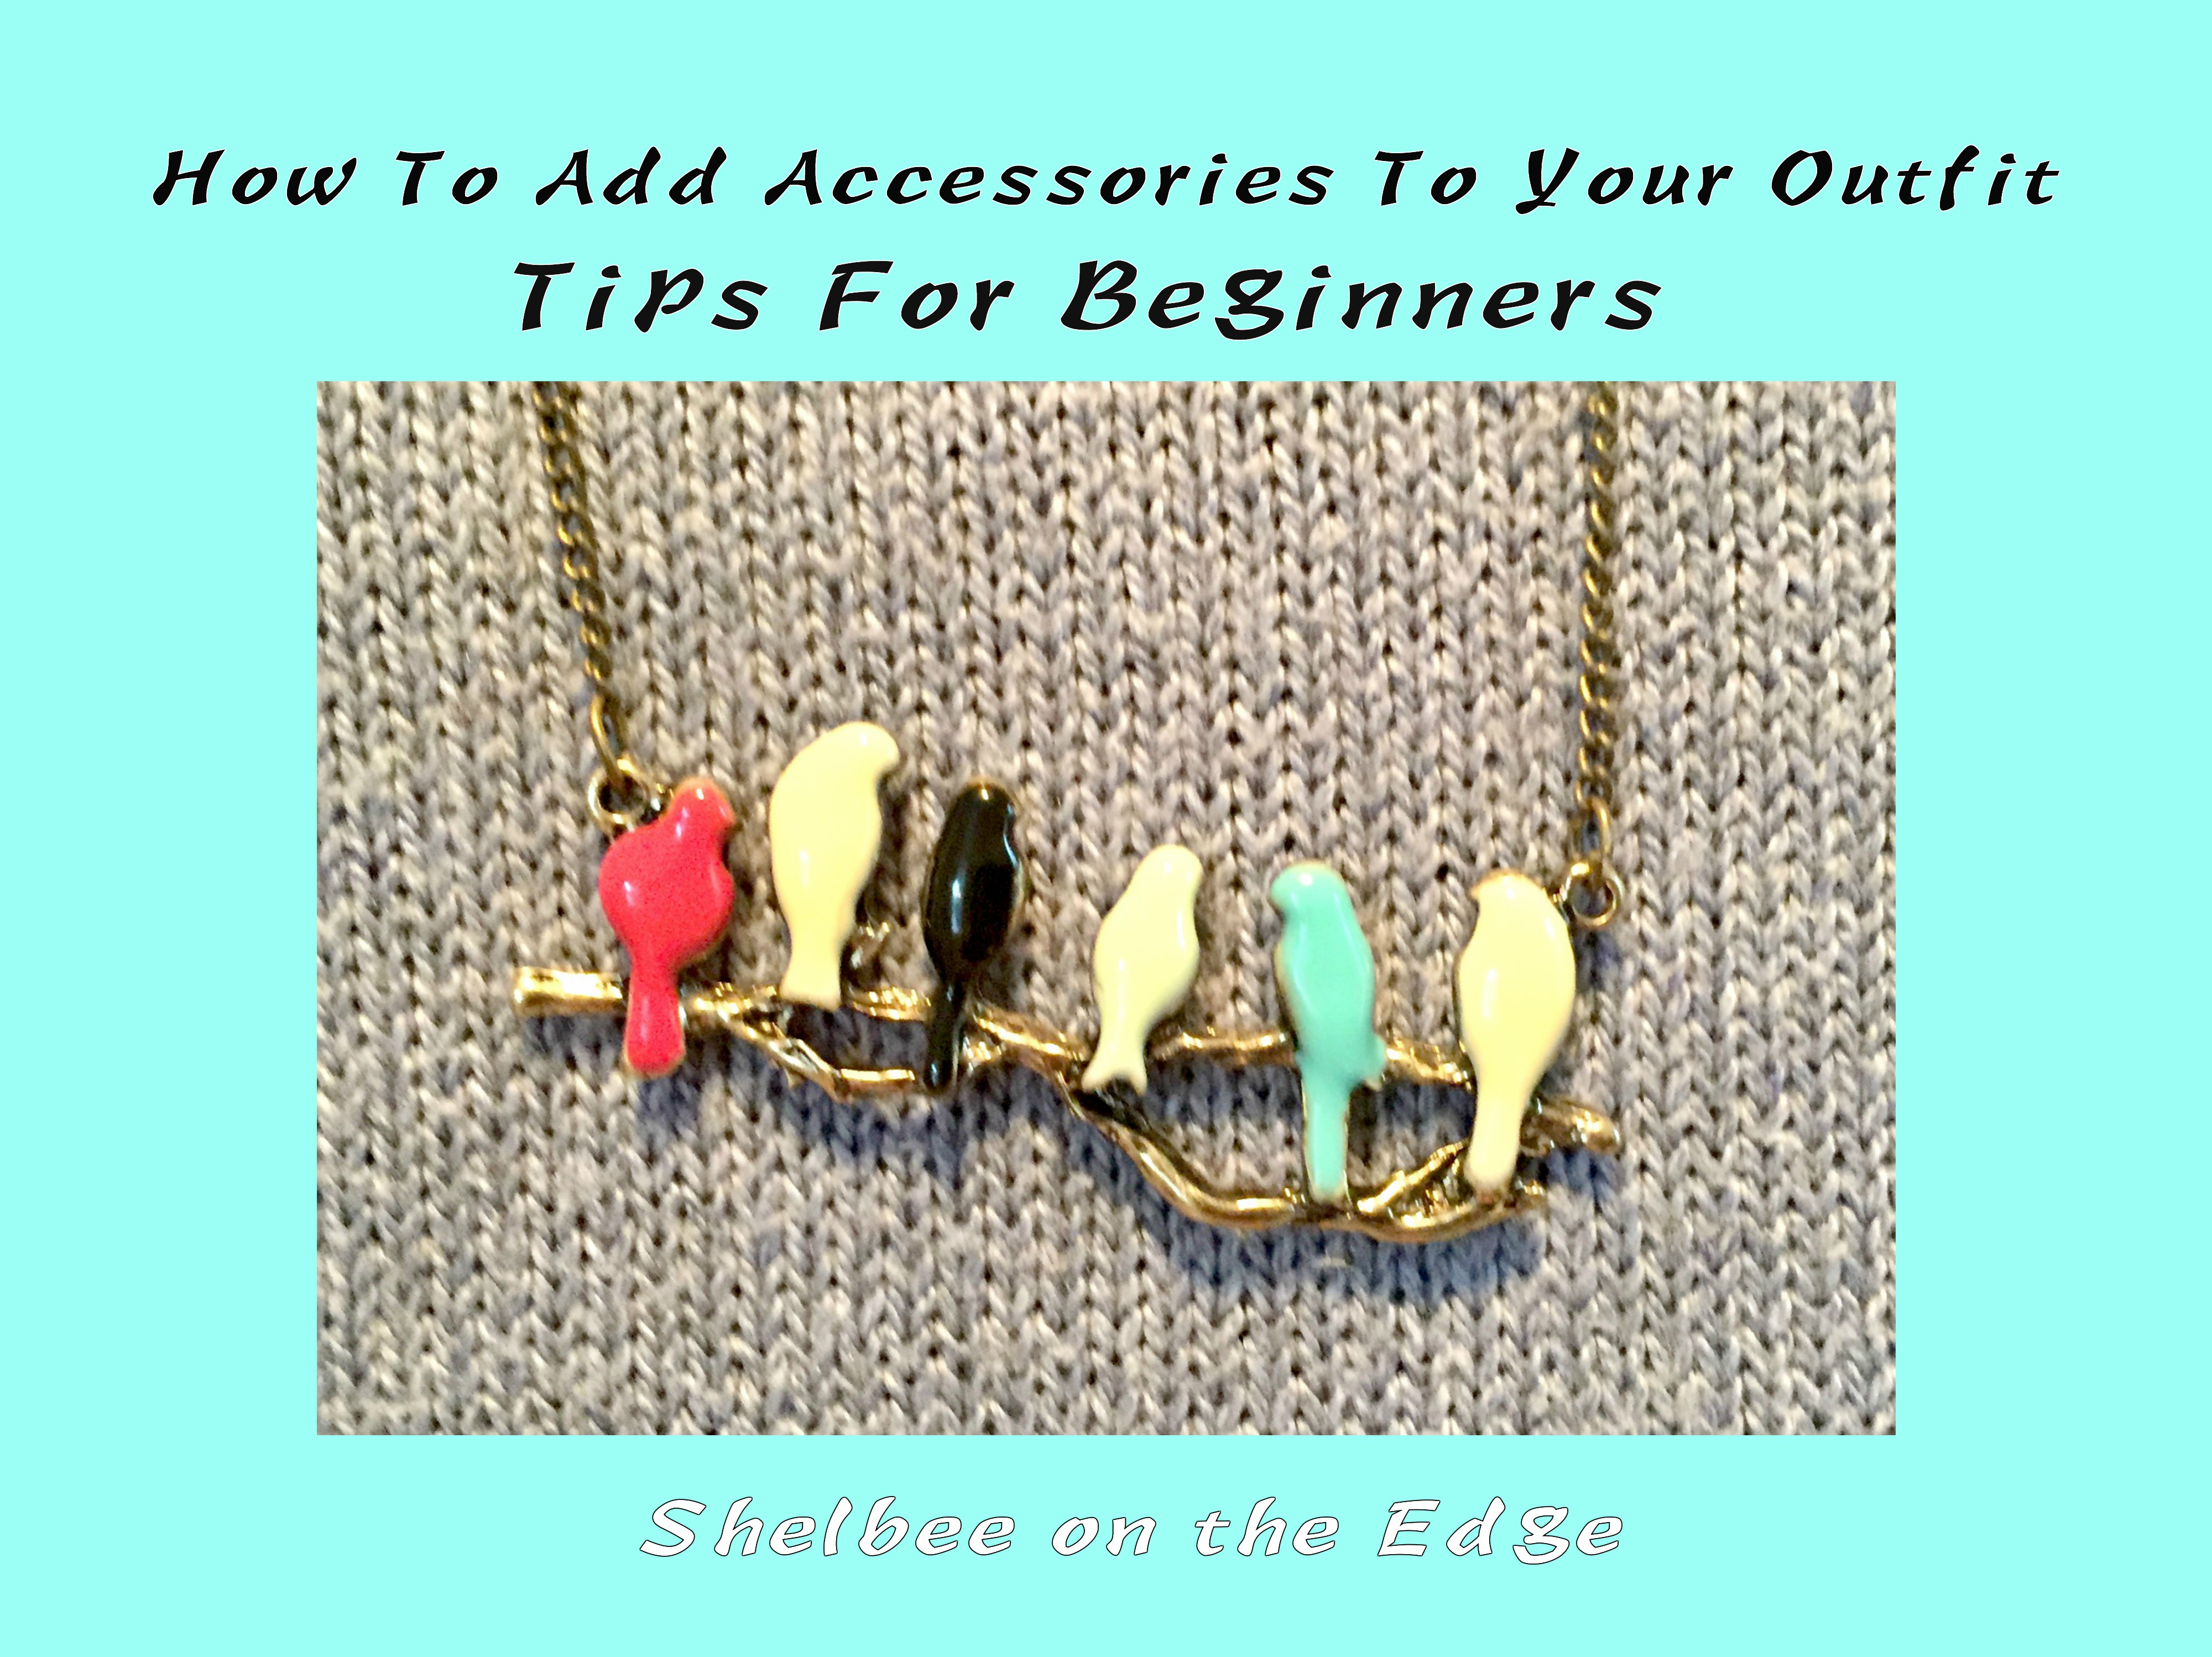 How To Add Accessories to Your Outfit: Tips For Beginners